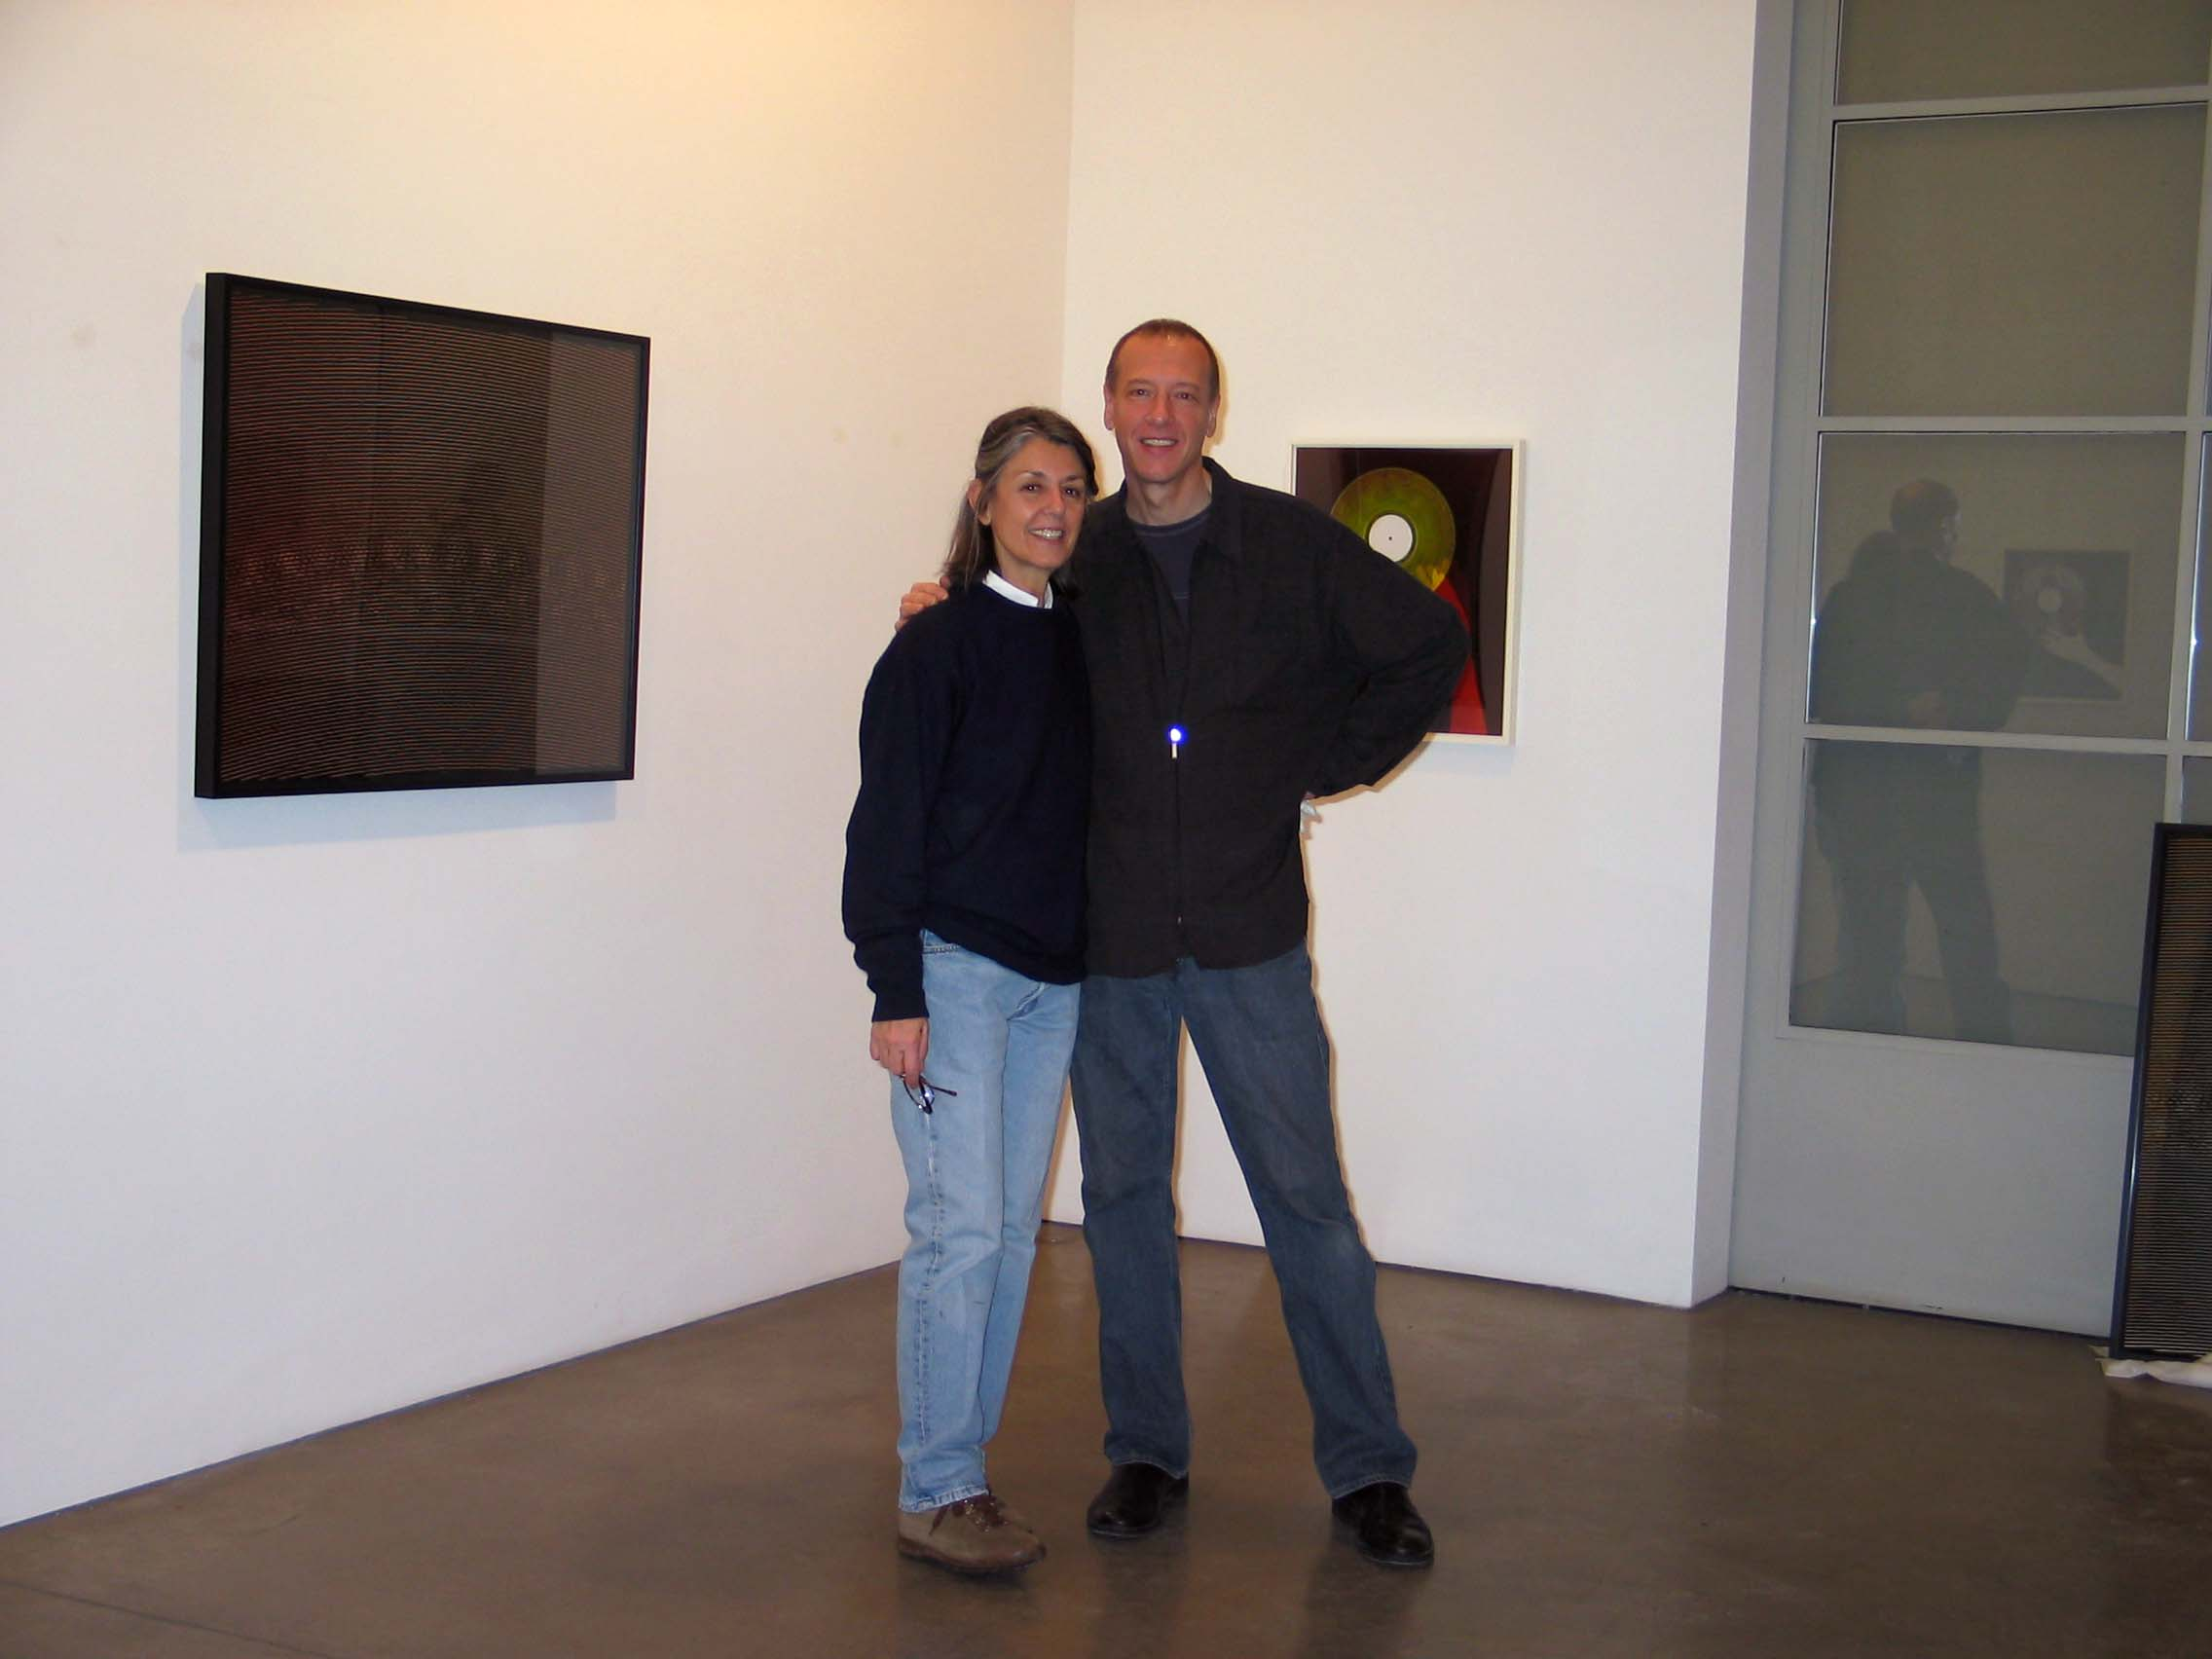 Paula Cooper and Christian Marclay, January 2005.